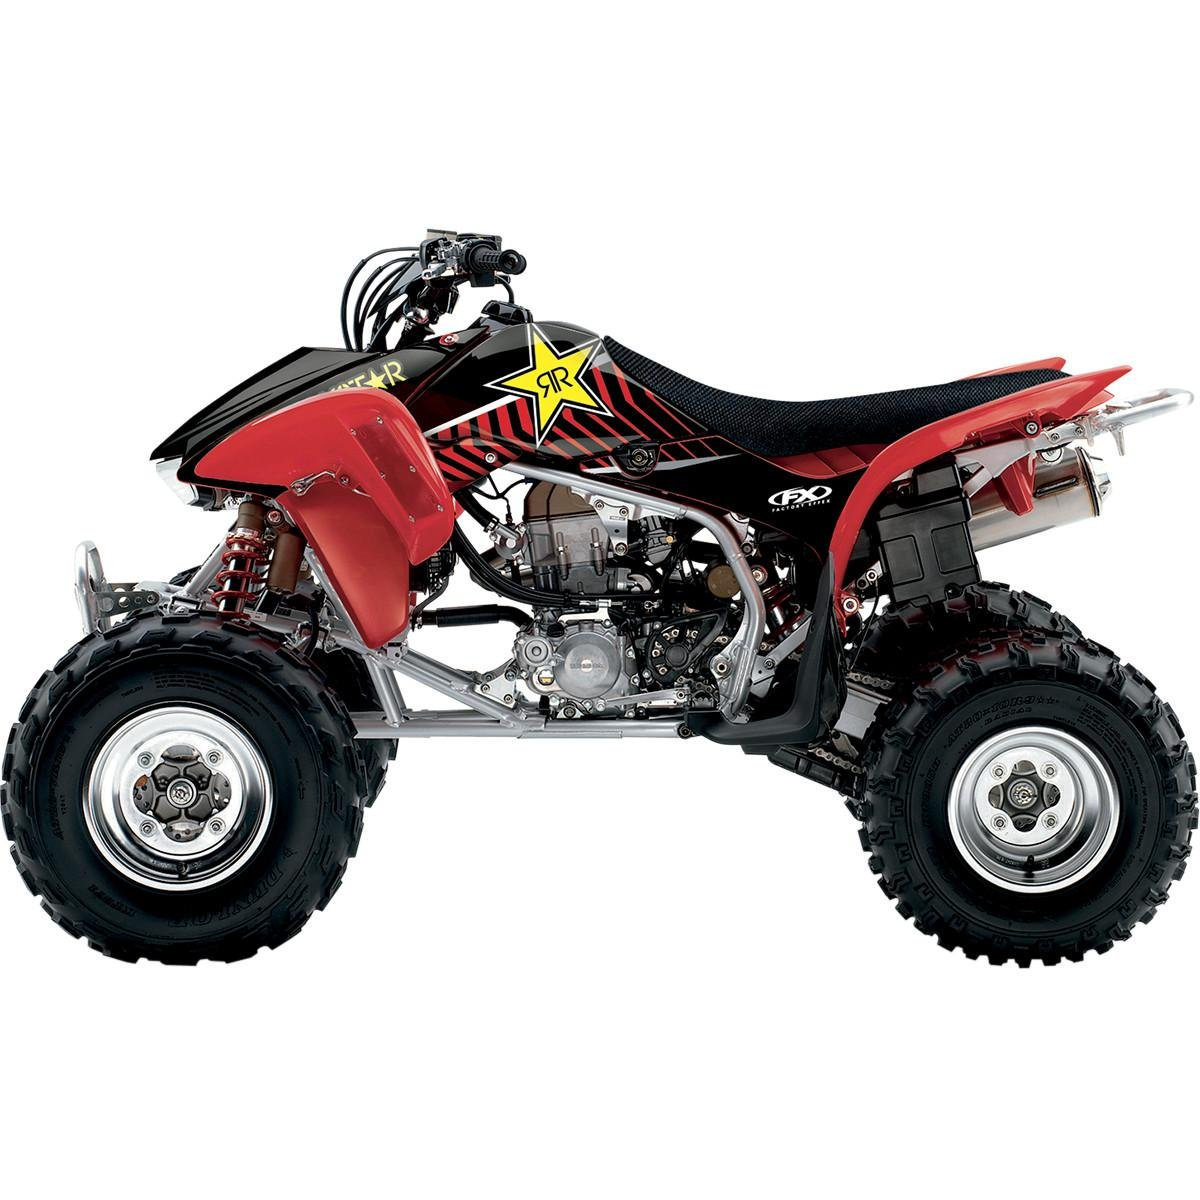 Factory Effex (16-14374) ATV Graphic Kit